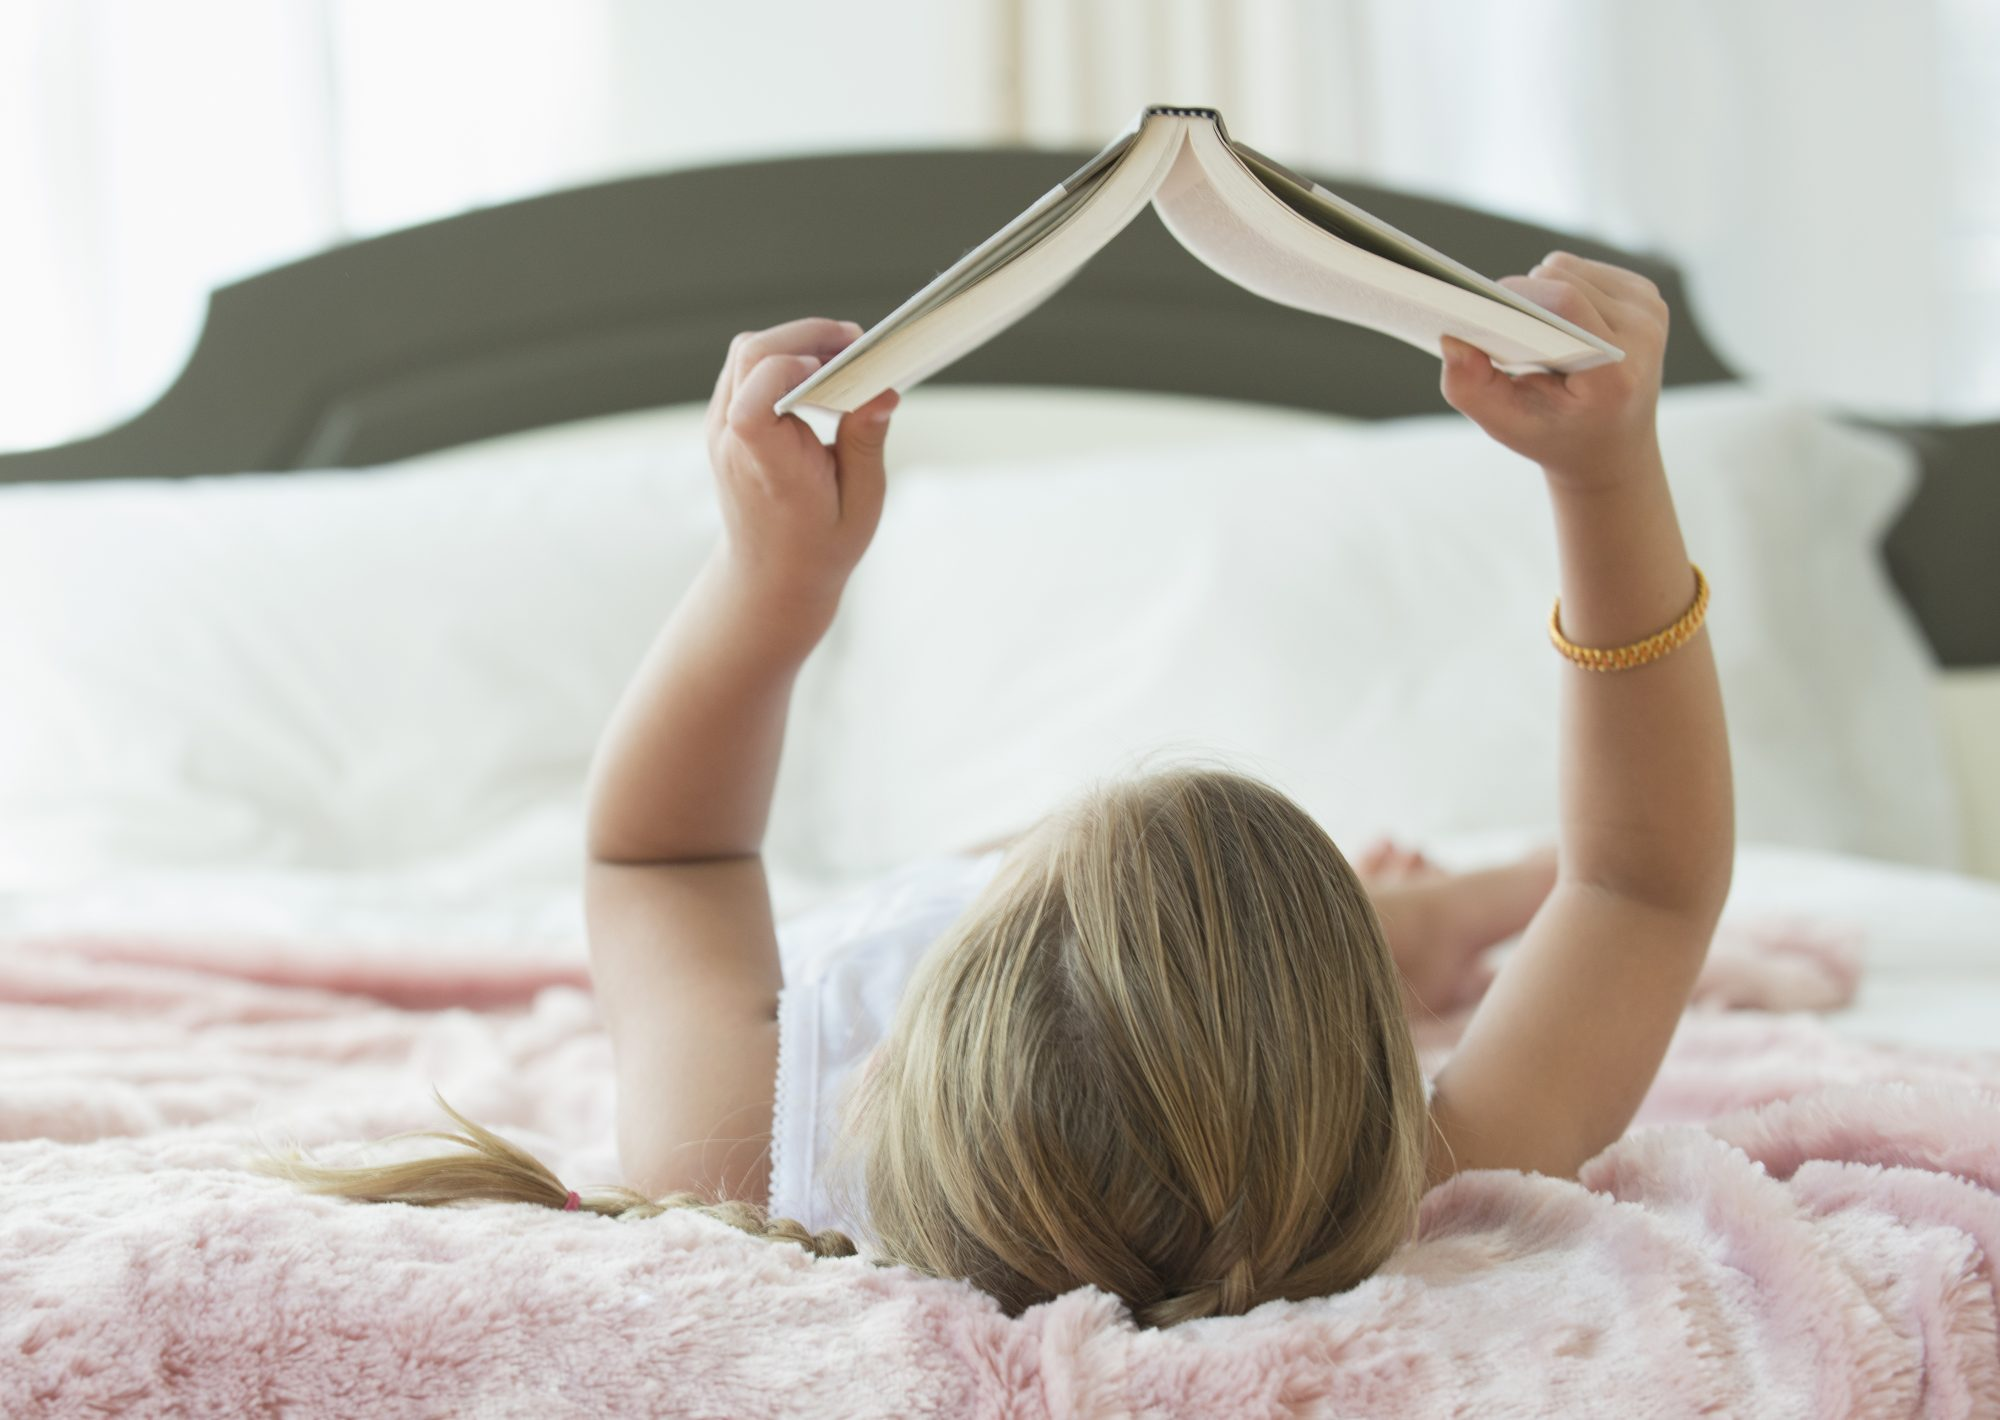 Caucasian girl laying on bed reading book